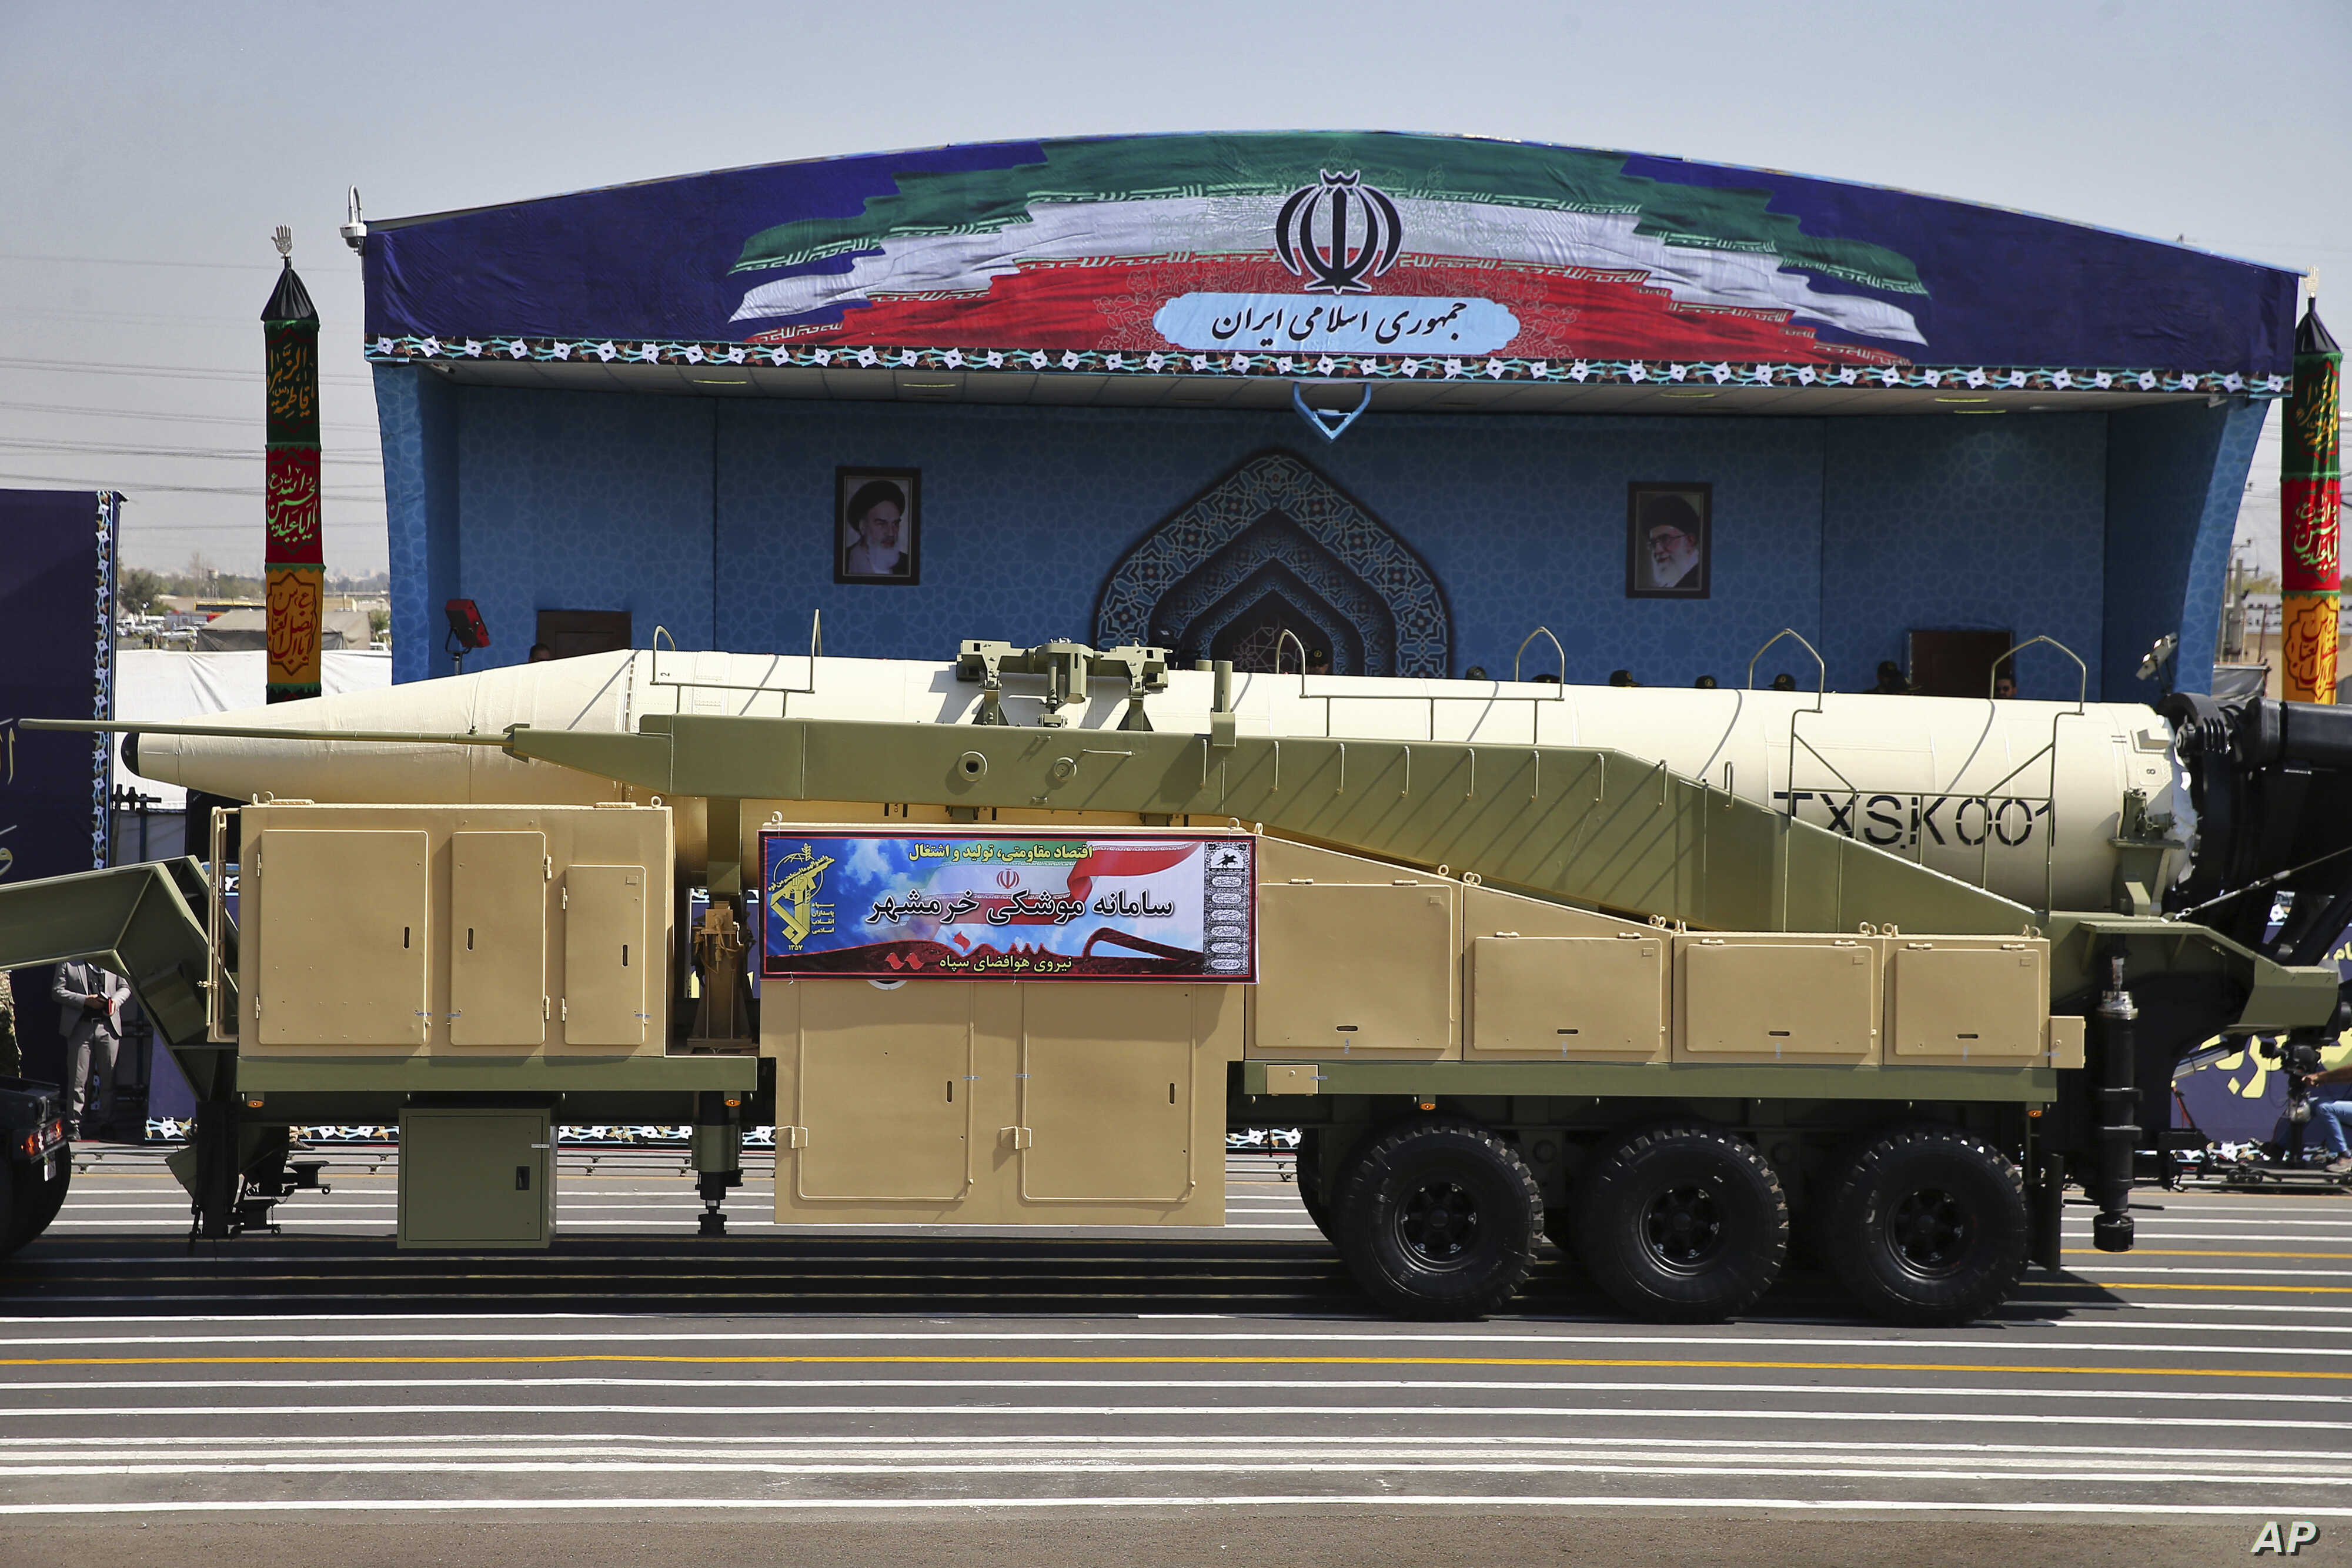 Iran's Khoramshahr missile is displayed by the Revolutionary Guard during a military parade marking the 37th anniversary of Iraq's 1980 invasion of Iran, outside Tehran, Sept. 22, 2017.